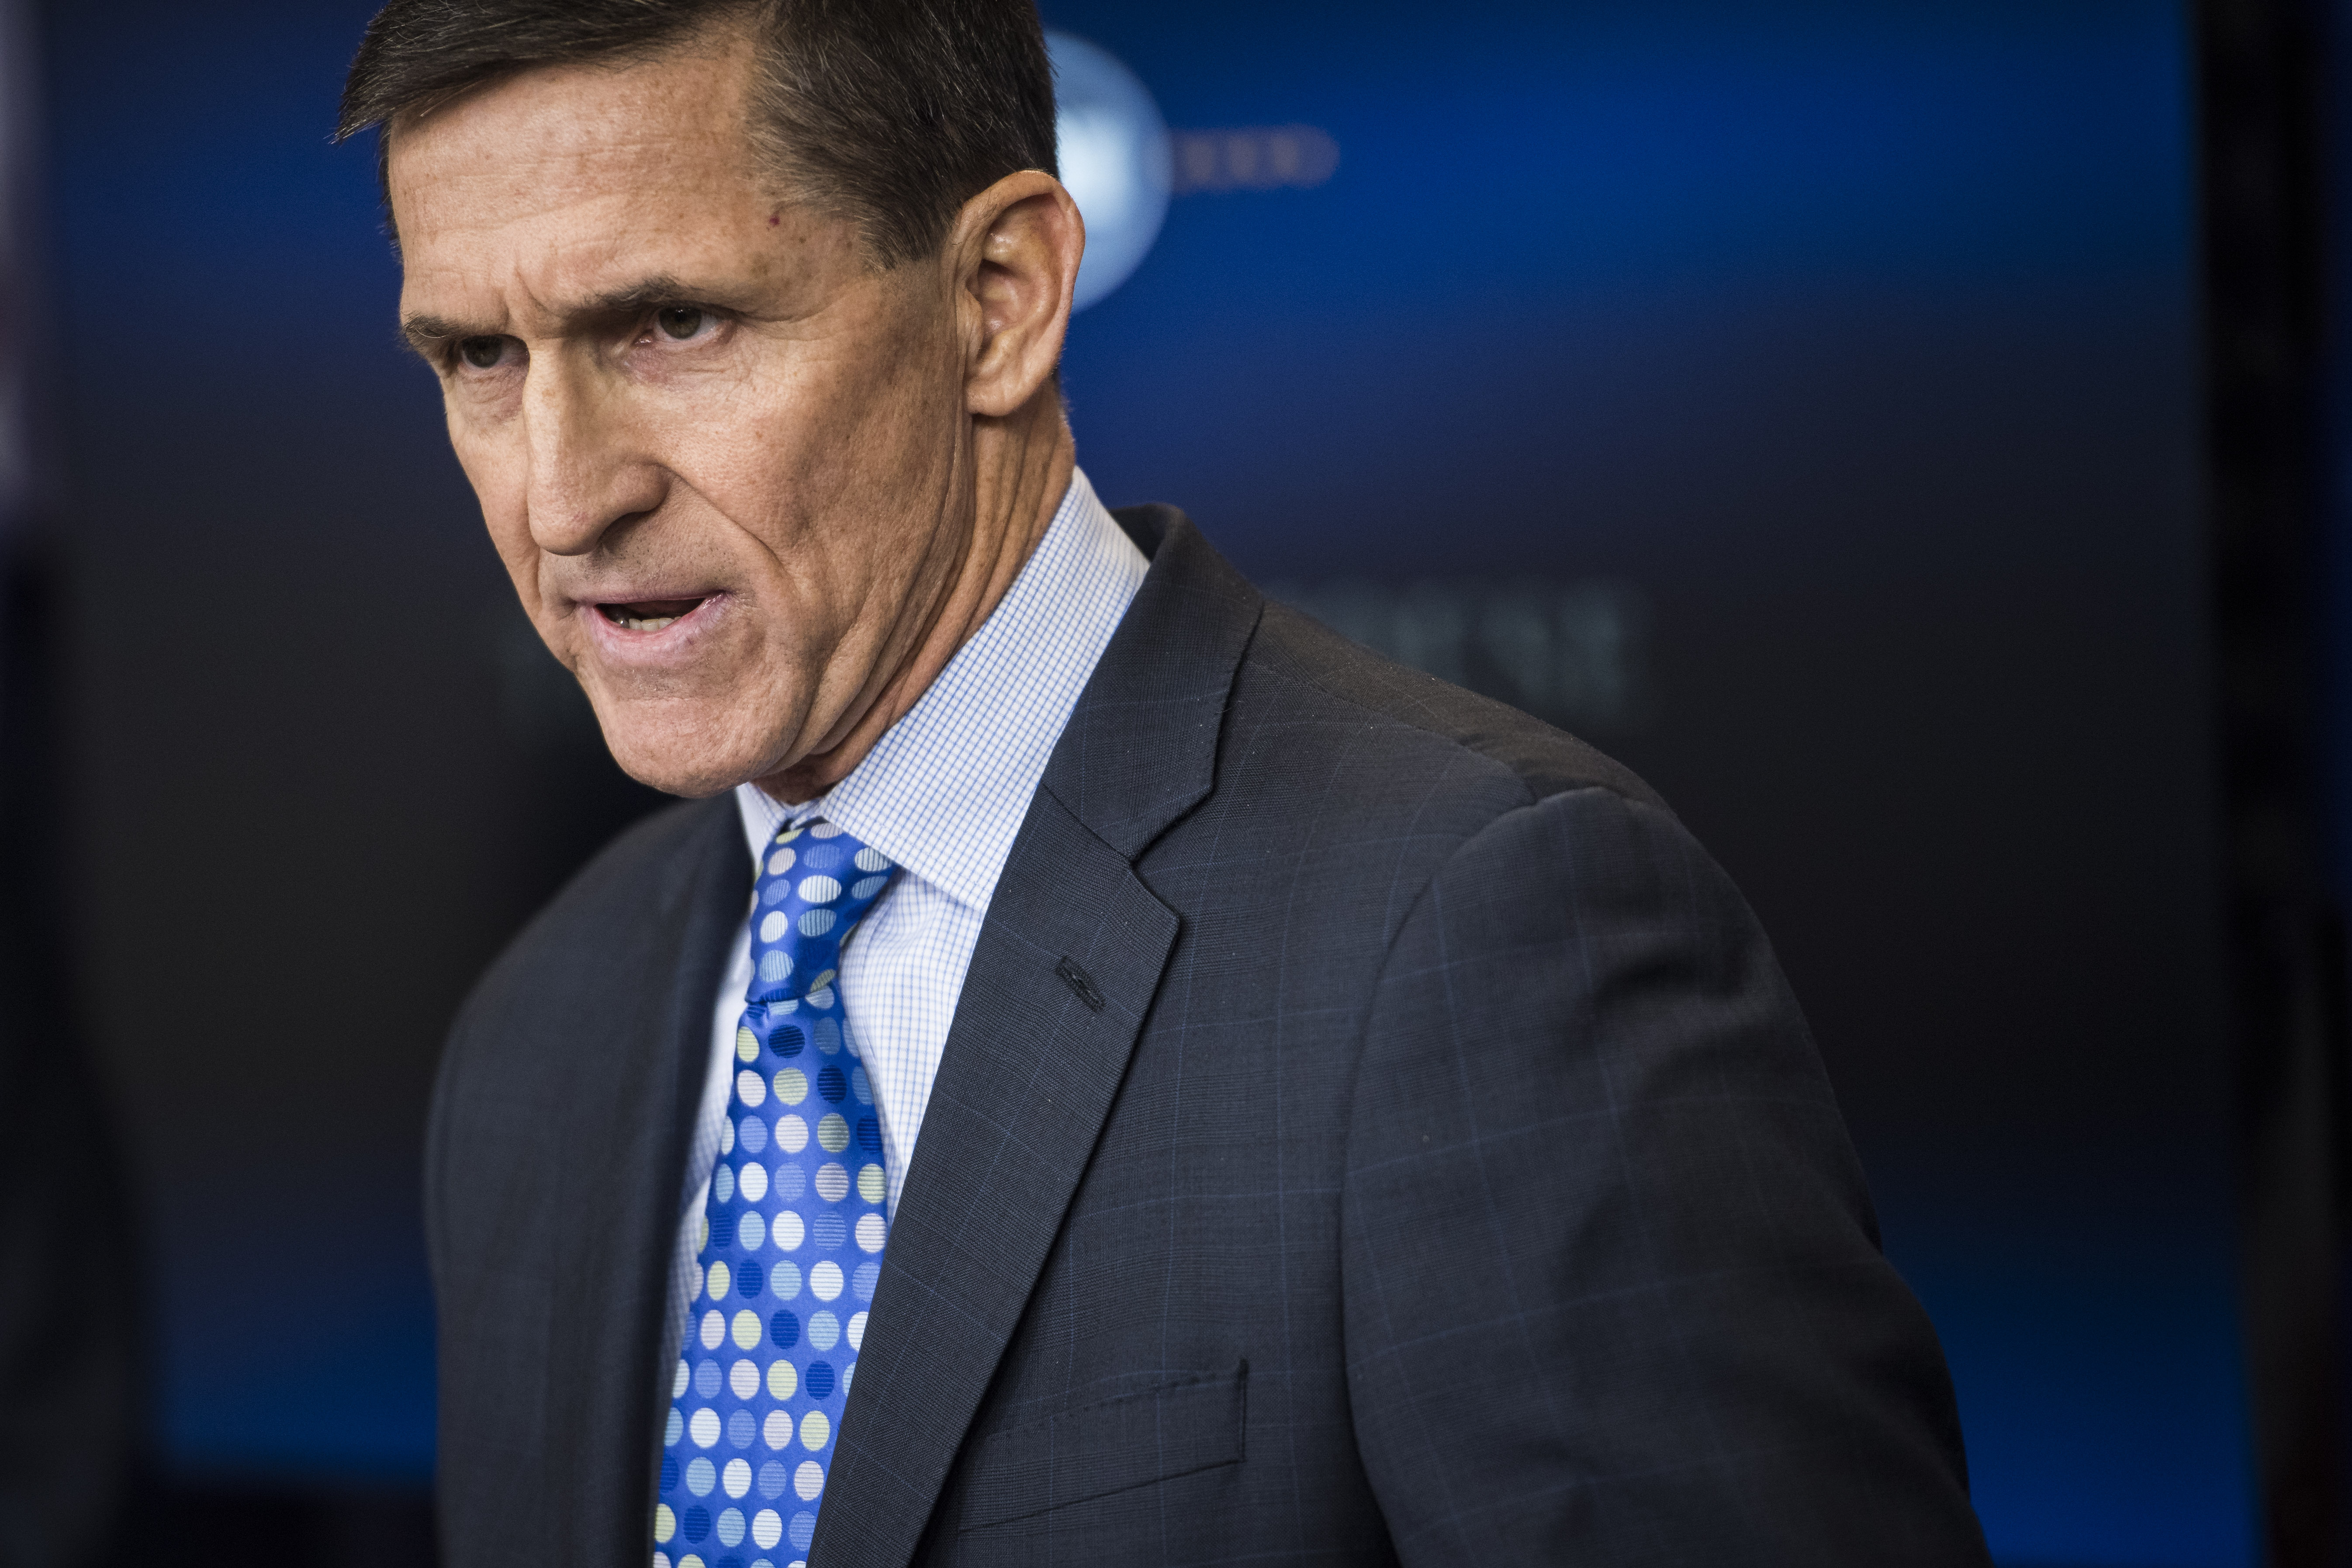 Former National Security Adviser Michael Flynn at the daily news briefing at the White House on Feb. 01, 2017.